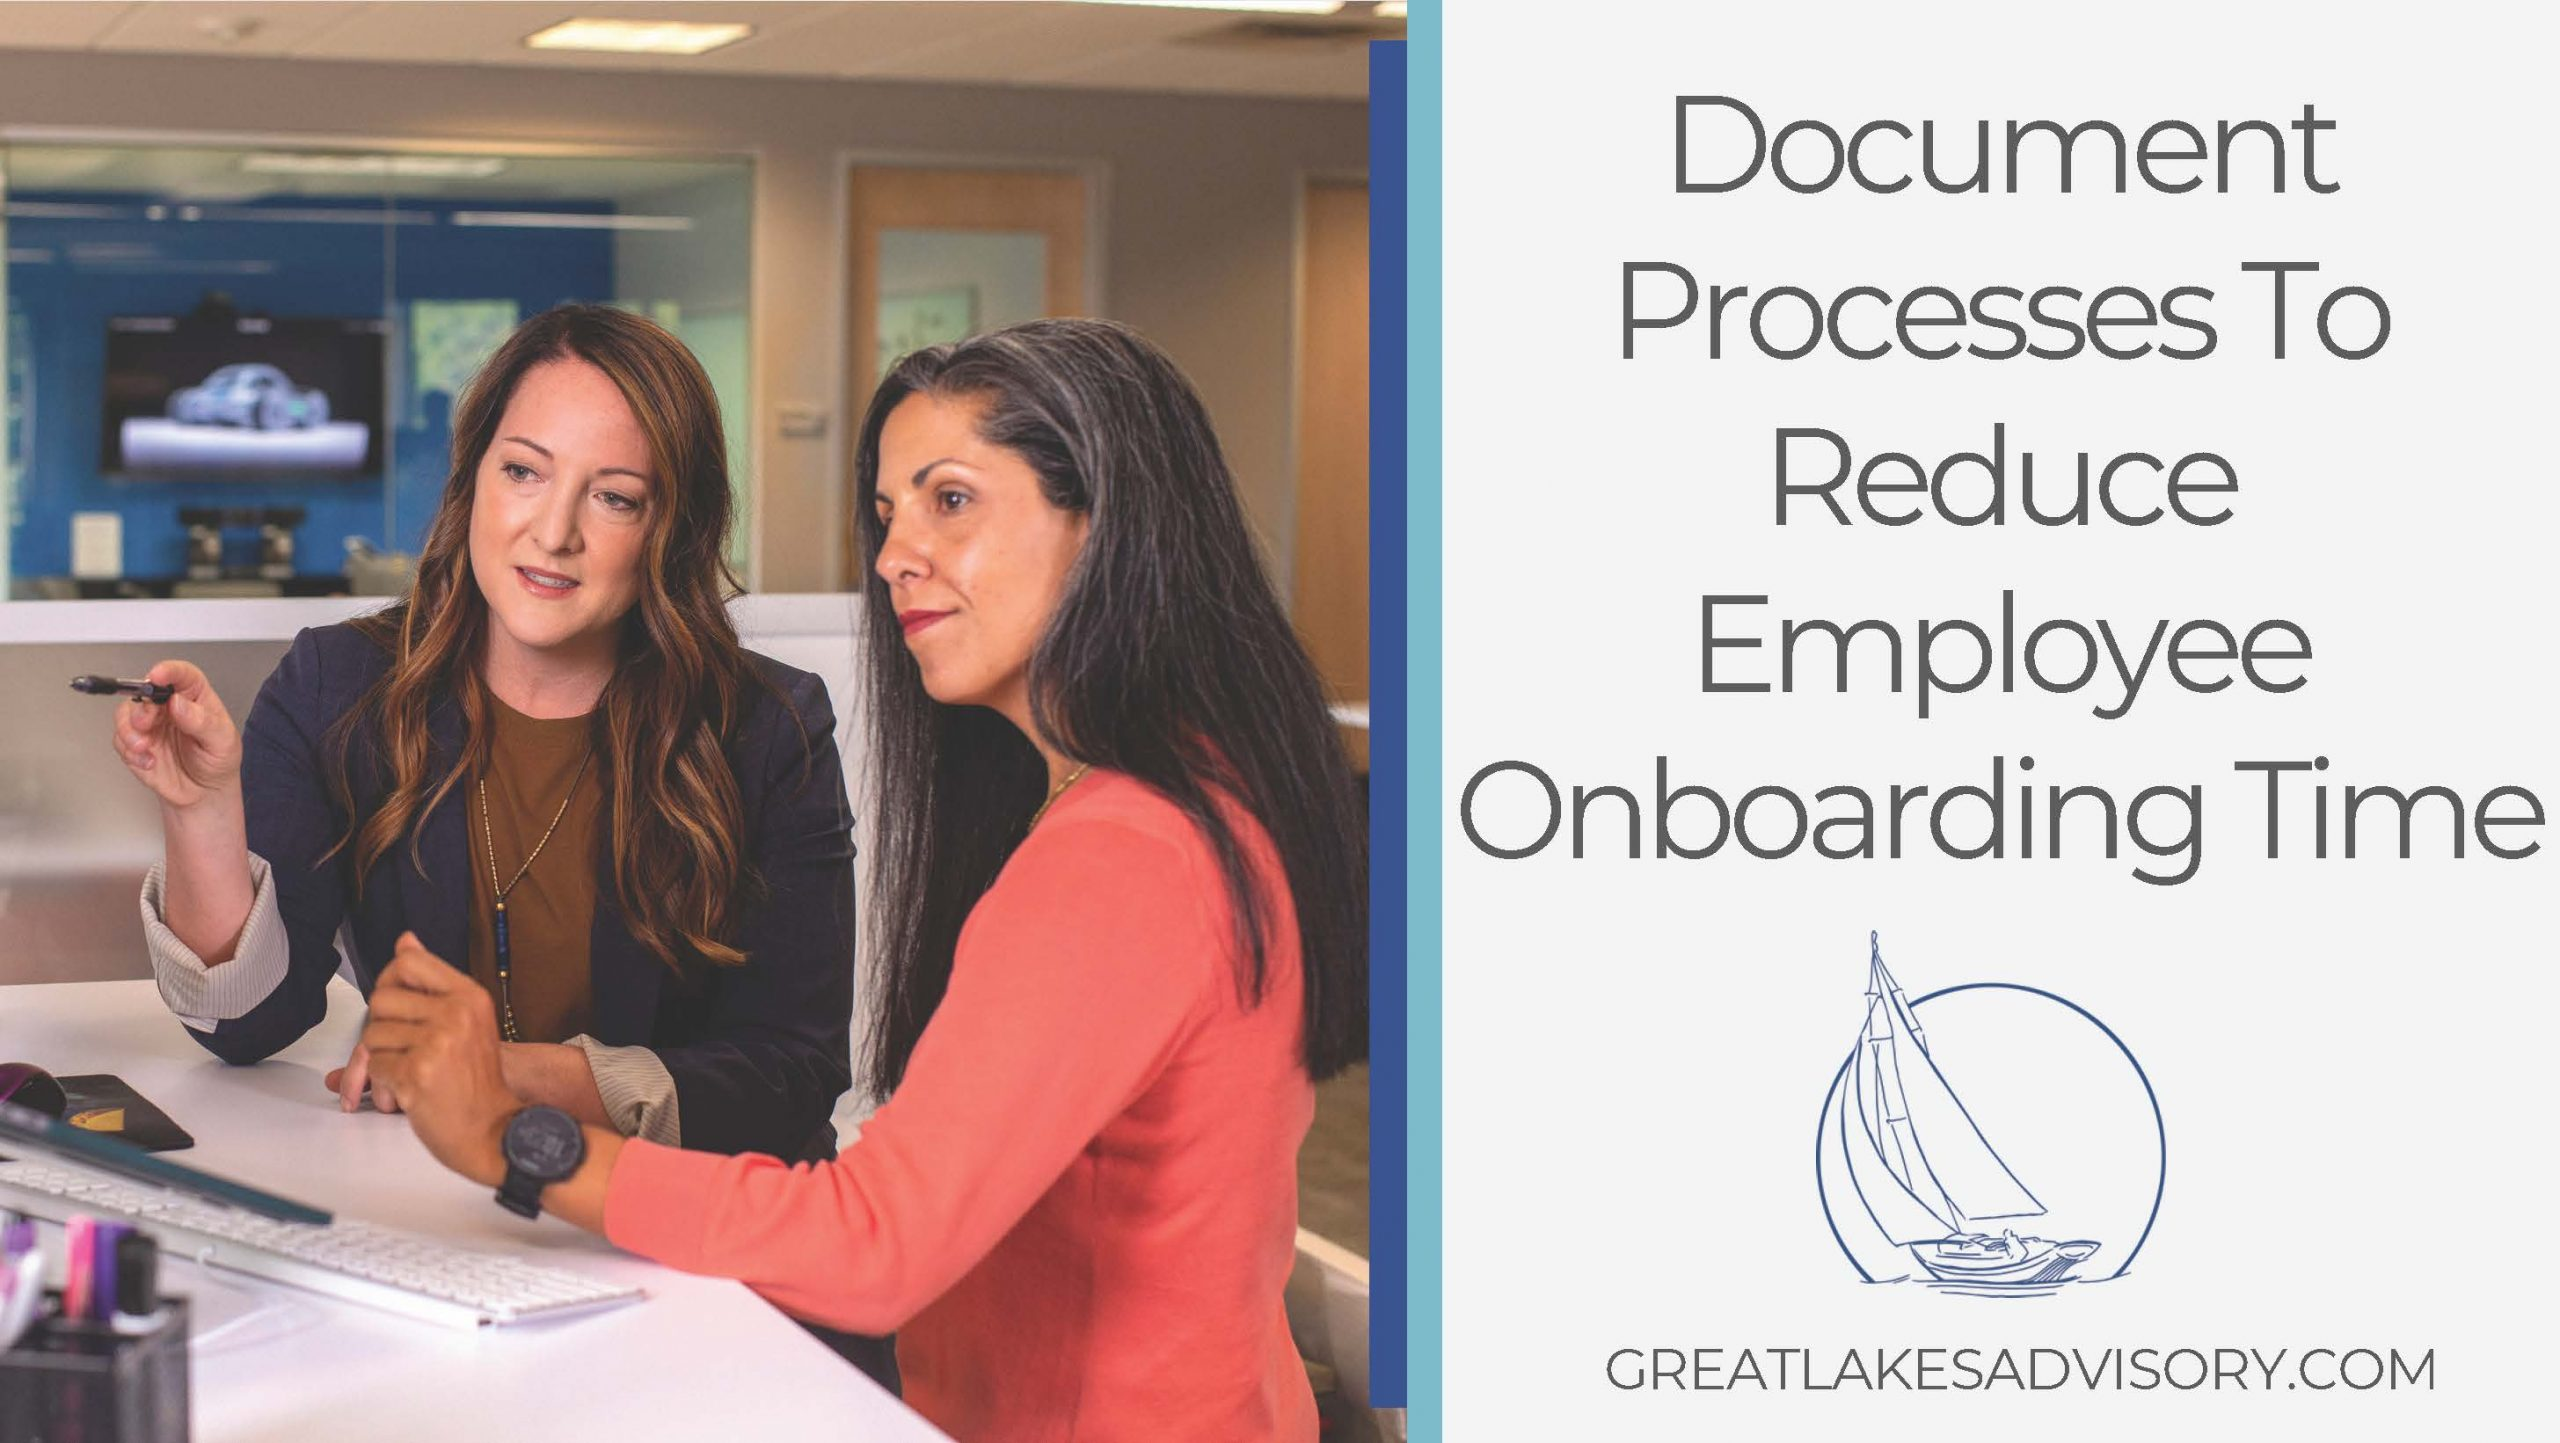 Document Processes To Reduce Employee Onboarding Time